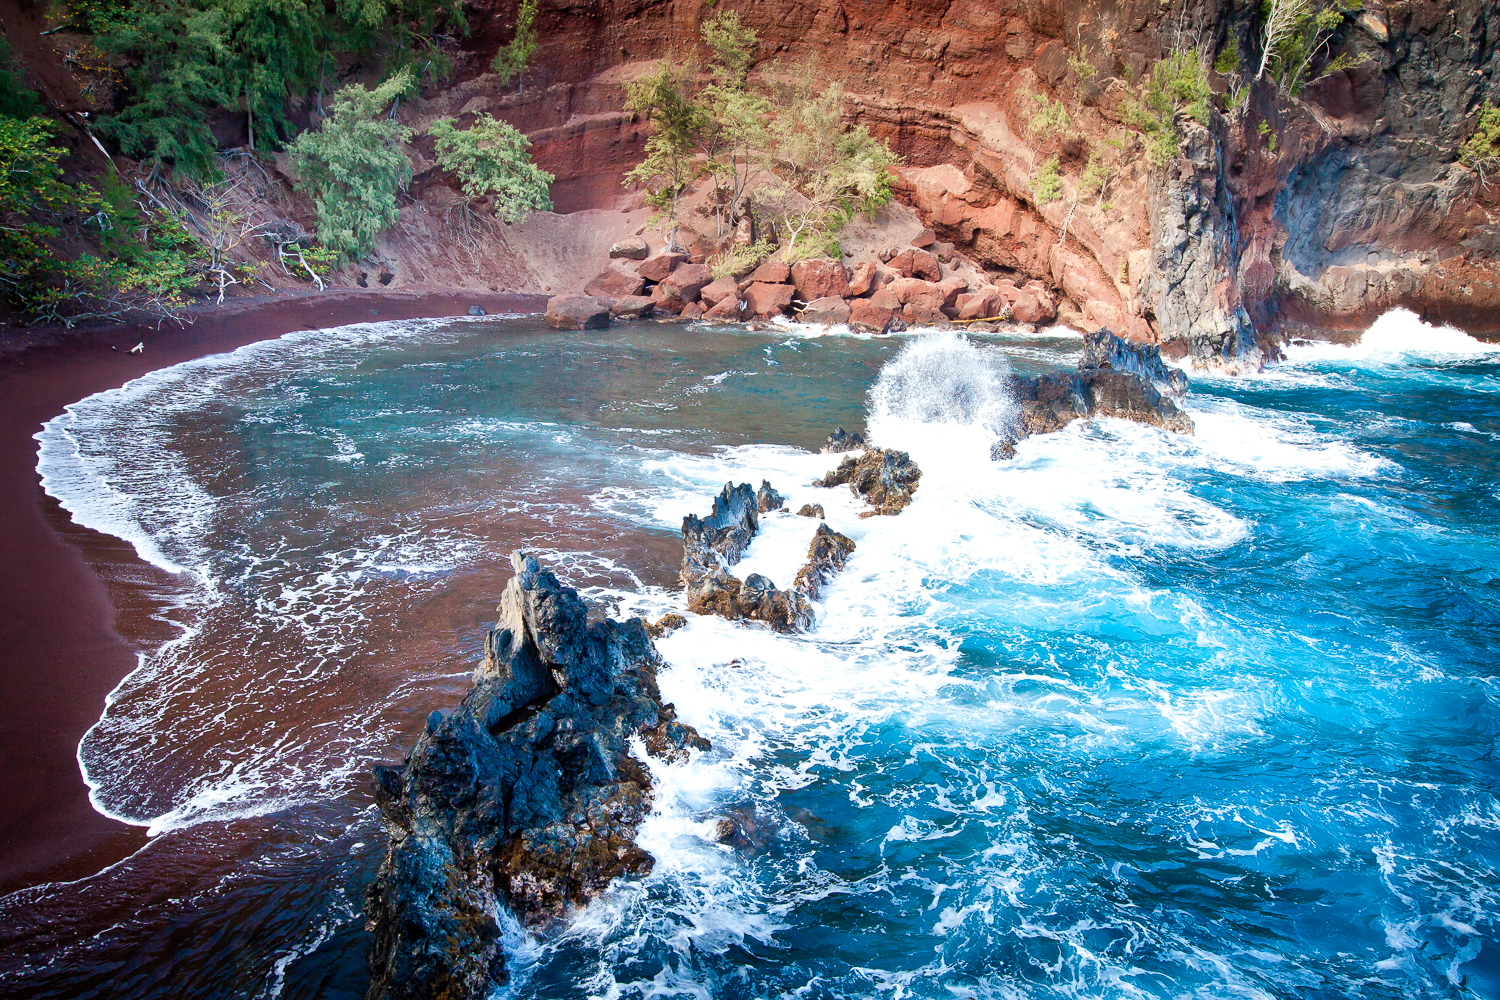 professional-image-pueo-creations-red-sands-beach-maui.jpg